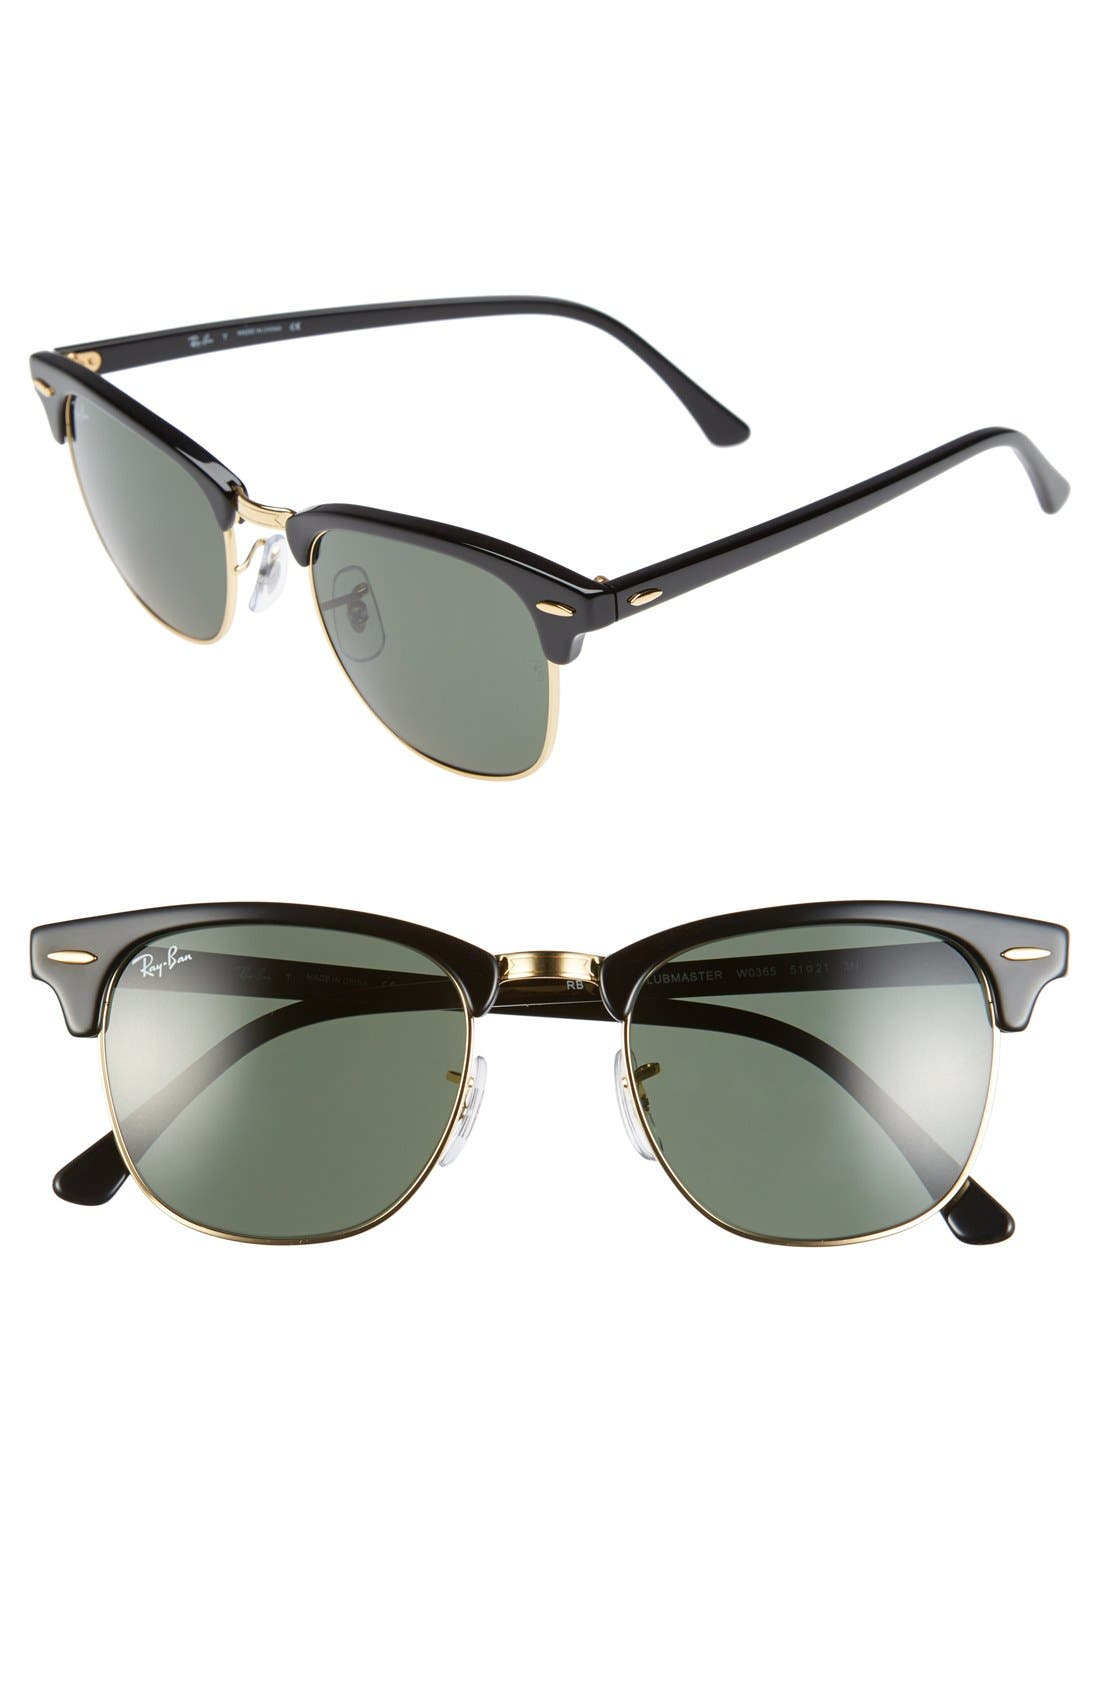 Standard Clubmaster 51mm Sunglasses,                         Main,                         color, Black